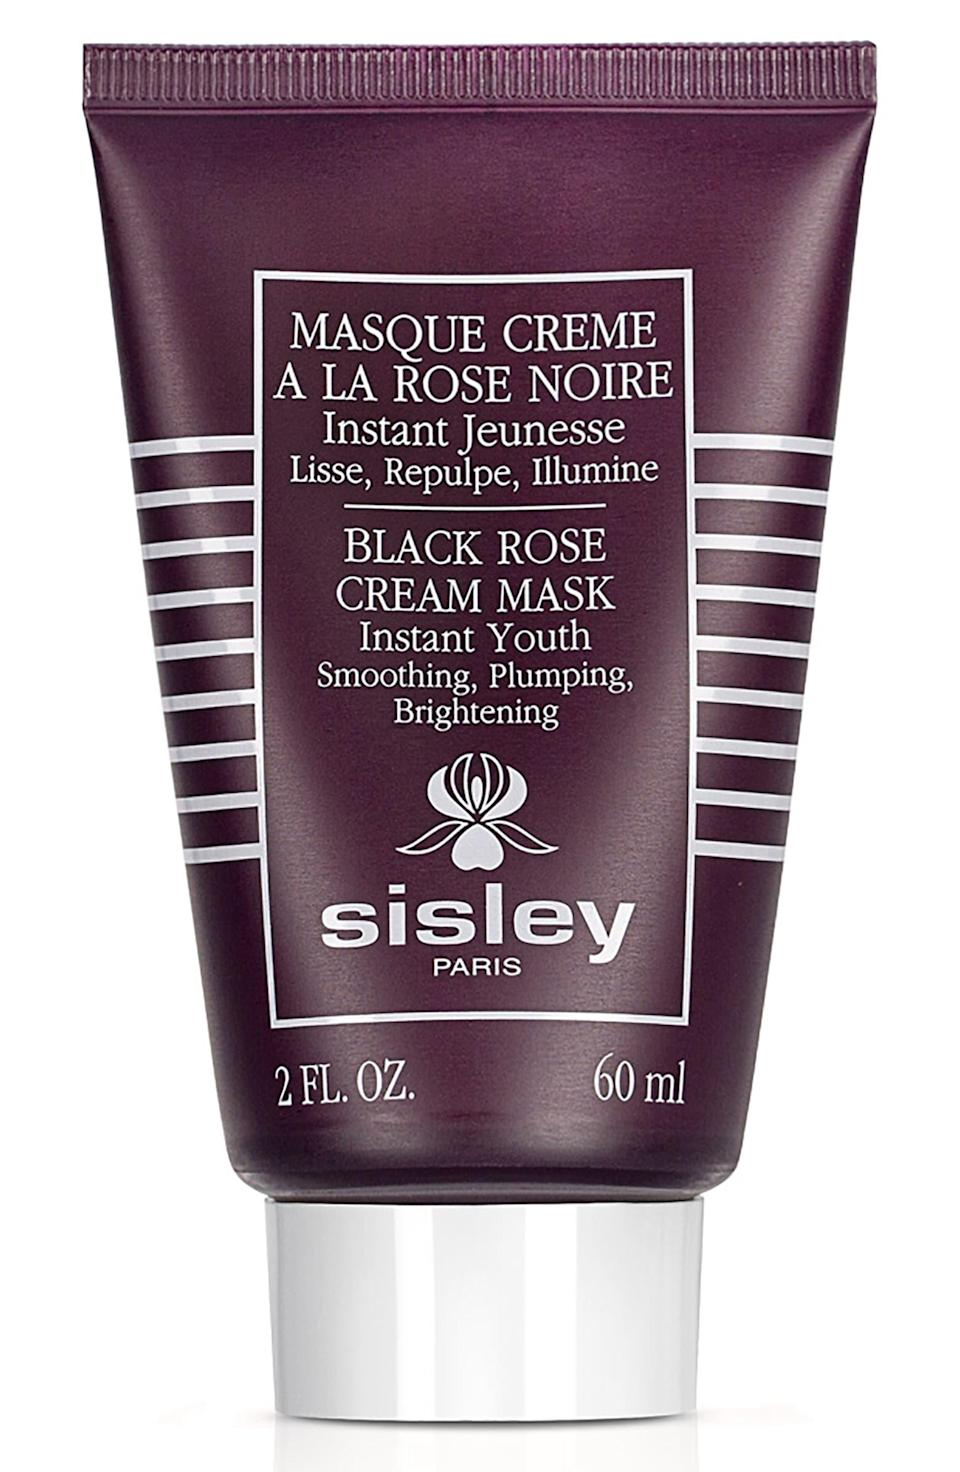 "<h3>Sisley Paris Black Rose Cream Mask</h3> <br>If you treat your mom to one splurge-worthy skin-care item, a potent face mask will get you the best bang for your buck. Sisley's beloved cream mask is like a facial in a tube, and your mom will feel like the star she is.<br><br><strong>Sisley Paris</strong> Black Rose Cream Mask, $, available at <a href=""https://go.skimresources.com/?id=30283X879131&url=https%3A%2F%2Fshop.nordstrom.com%2Fs%2Fsisley-paris-black-rose-cream-mask%2F3465681%2Flite"" rel=""nofollow noopener"" target=""_blank"" data-ylk=""slk:Nordstrom"" class=""link rapid-noclick-resp"">Nordstrom</a><br>"